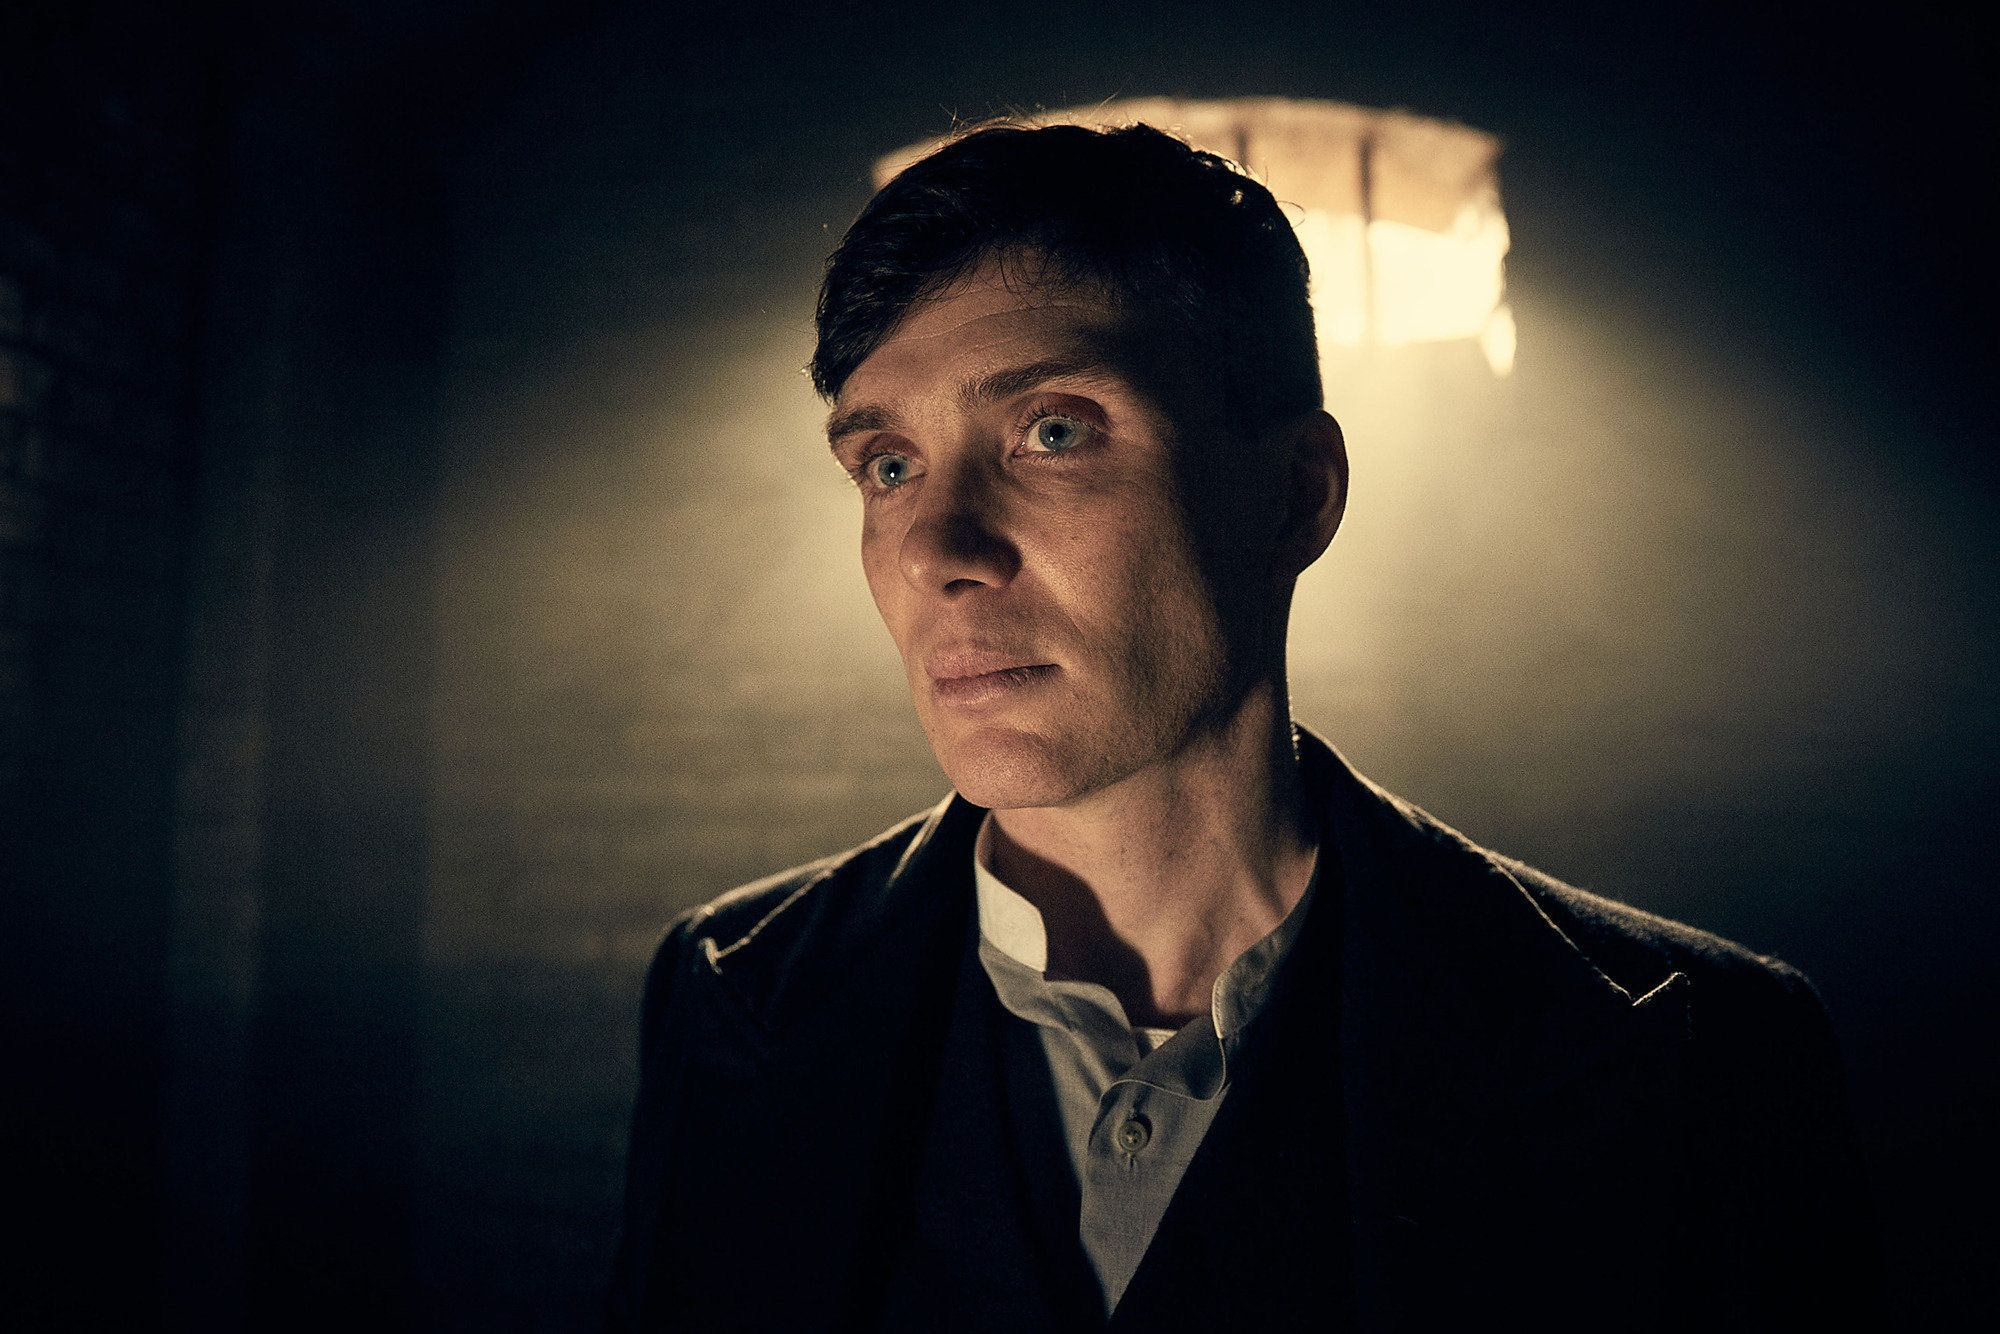 Cillian Murphy plays gangster Tommy Shelby in 'Peaky